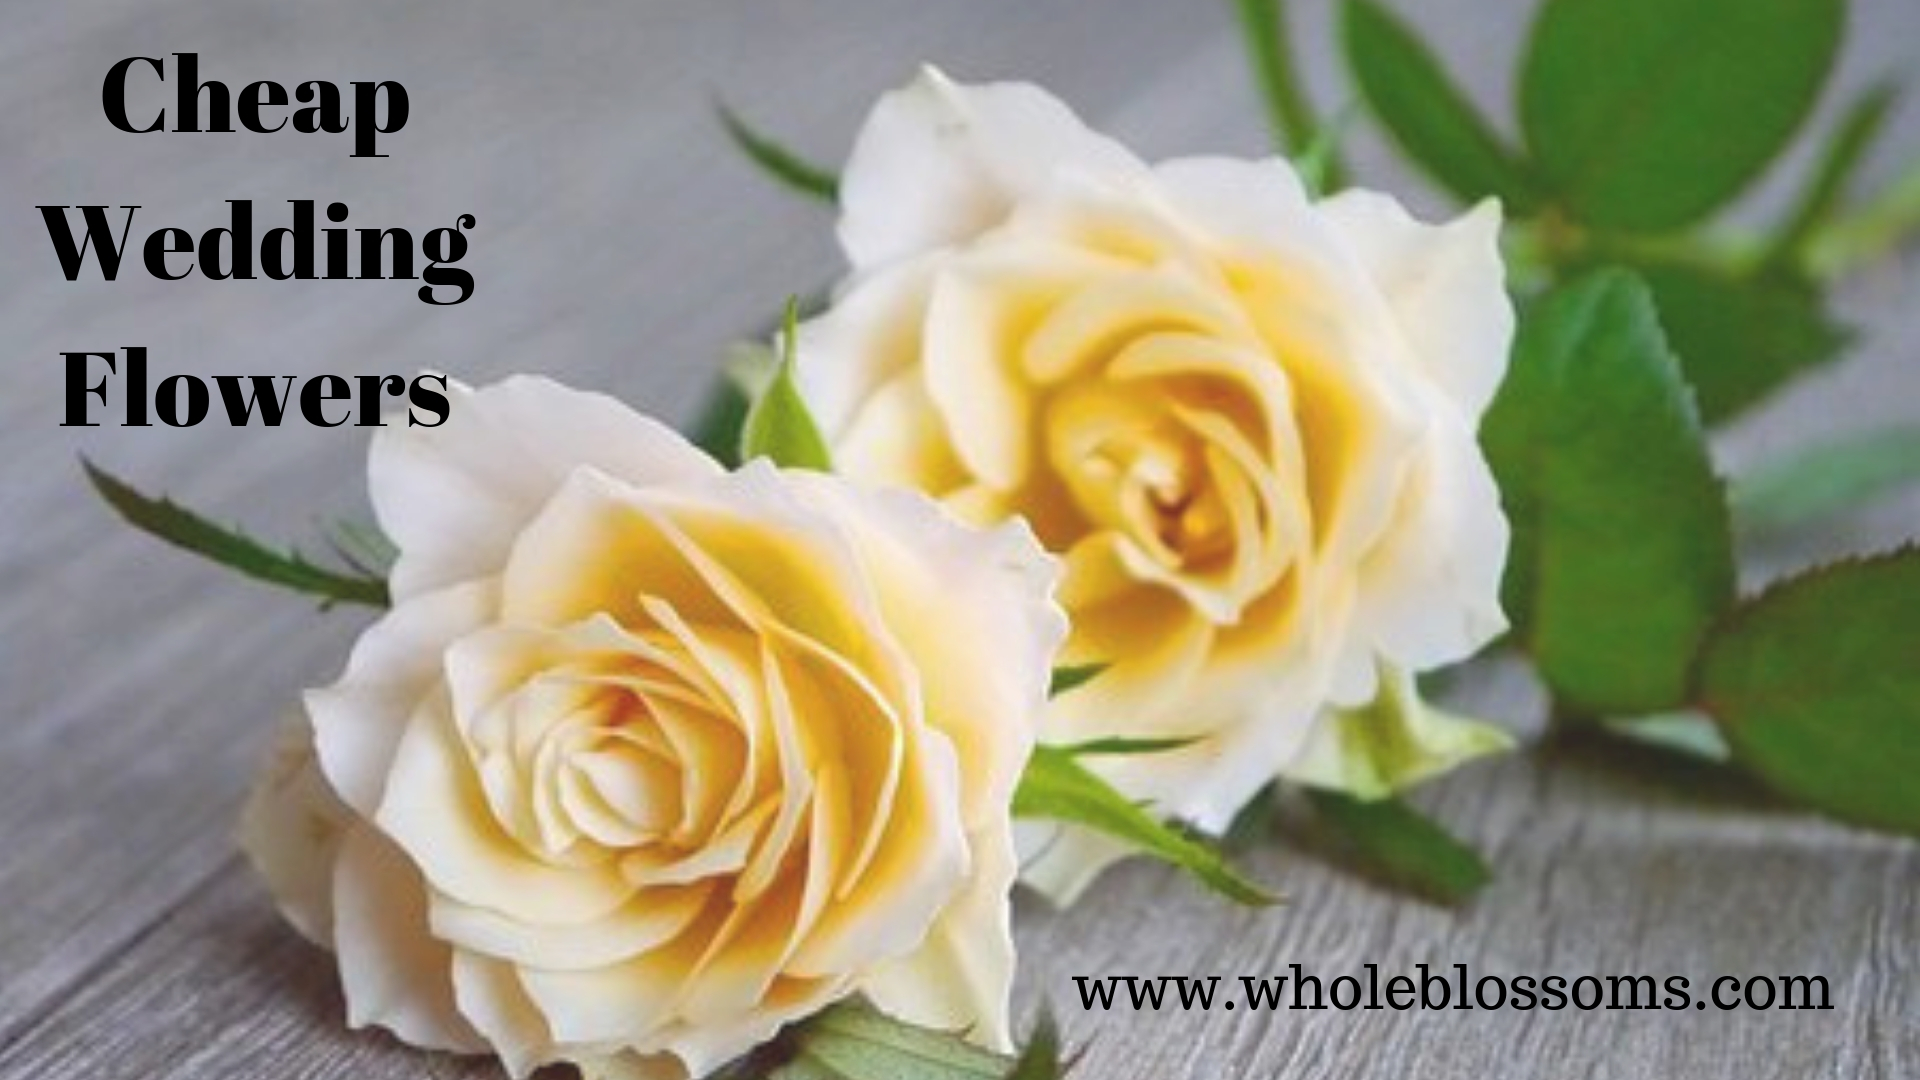 Buy Amazing Wedding Flowers Online at the Most Incredible Price